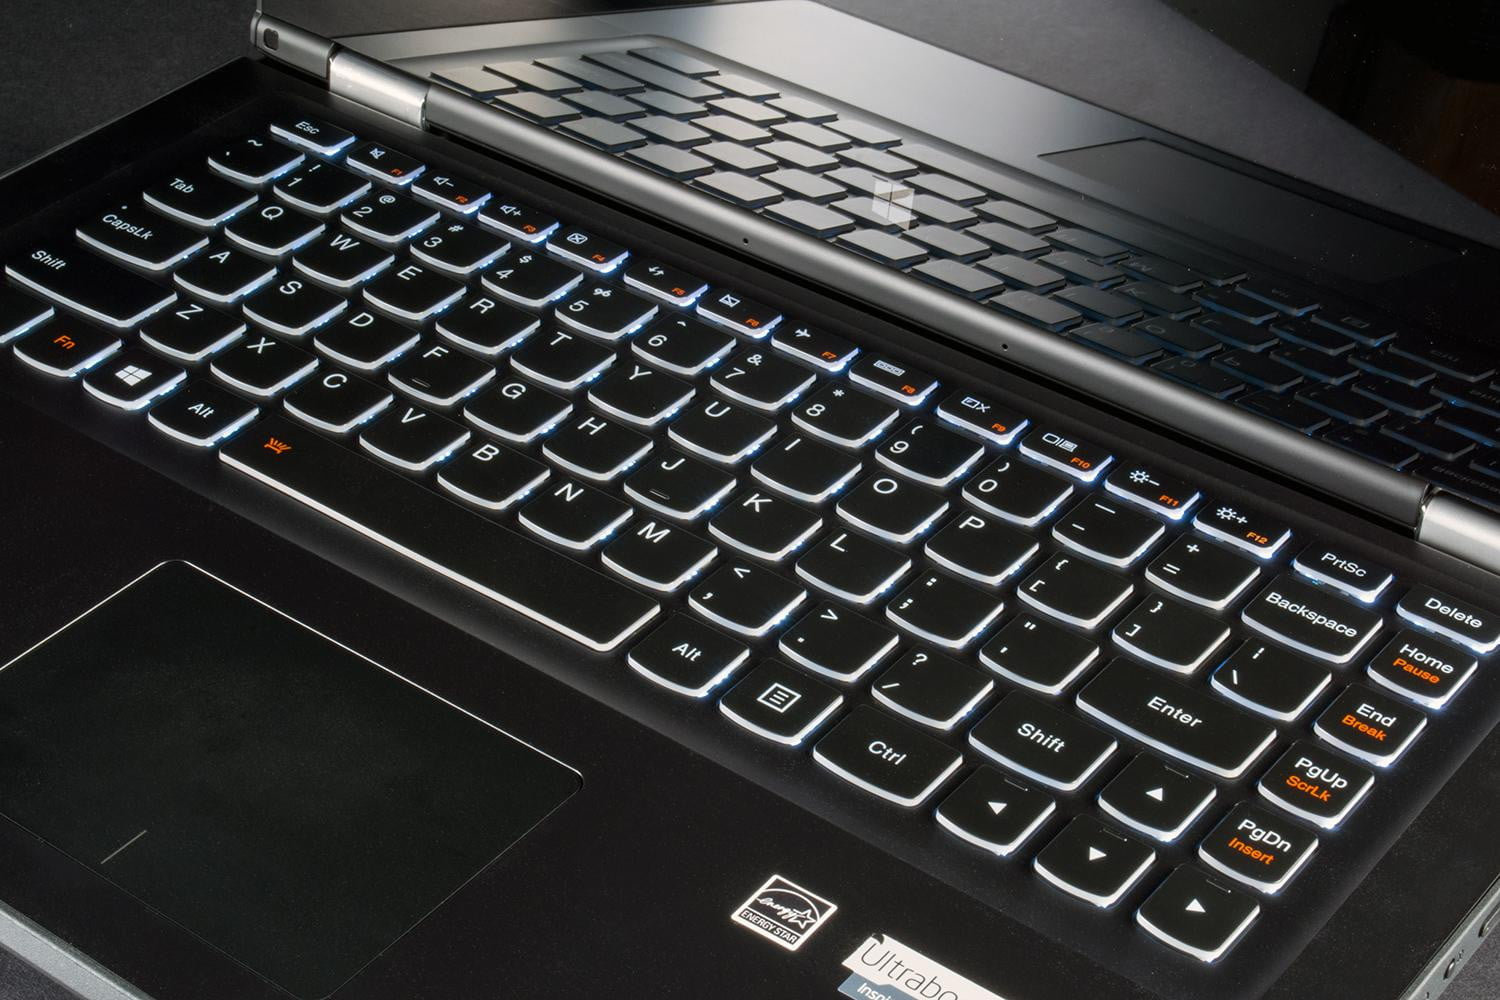 how to turn on the keyboard light on lenovo laptop